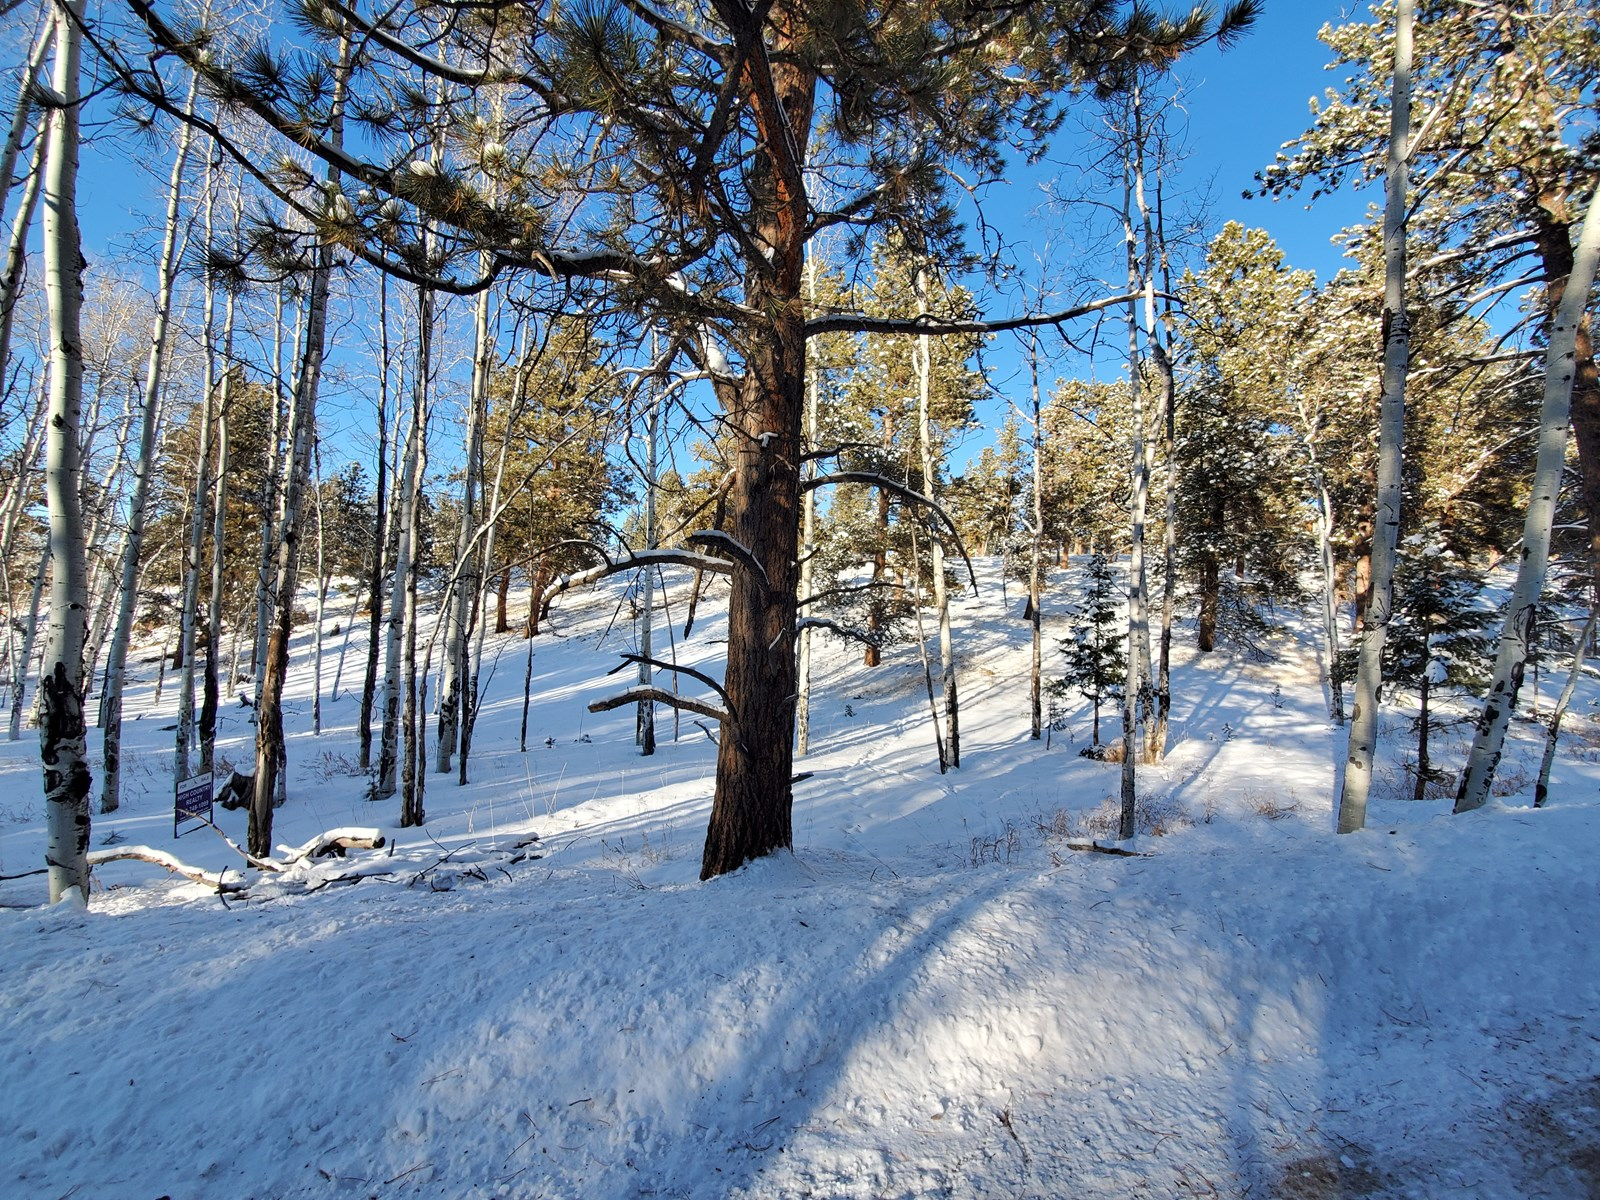 Land for Sale near Mueller State Park, Florissant, CO